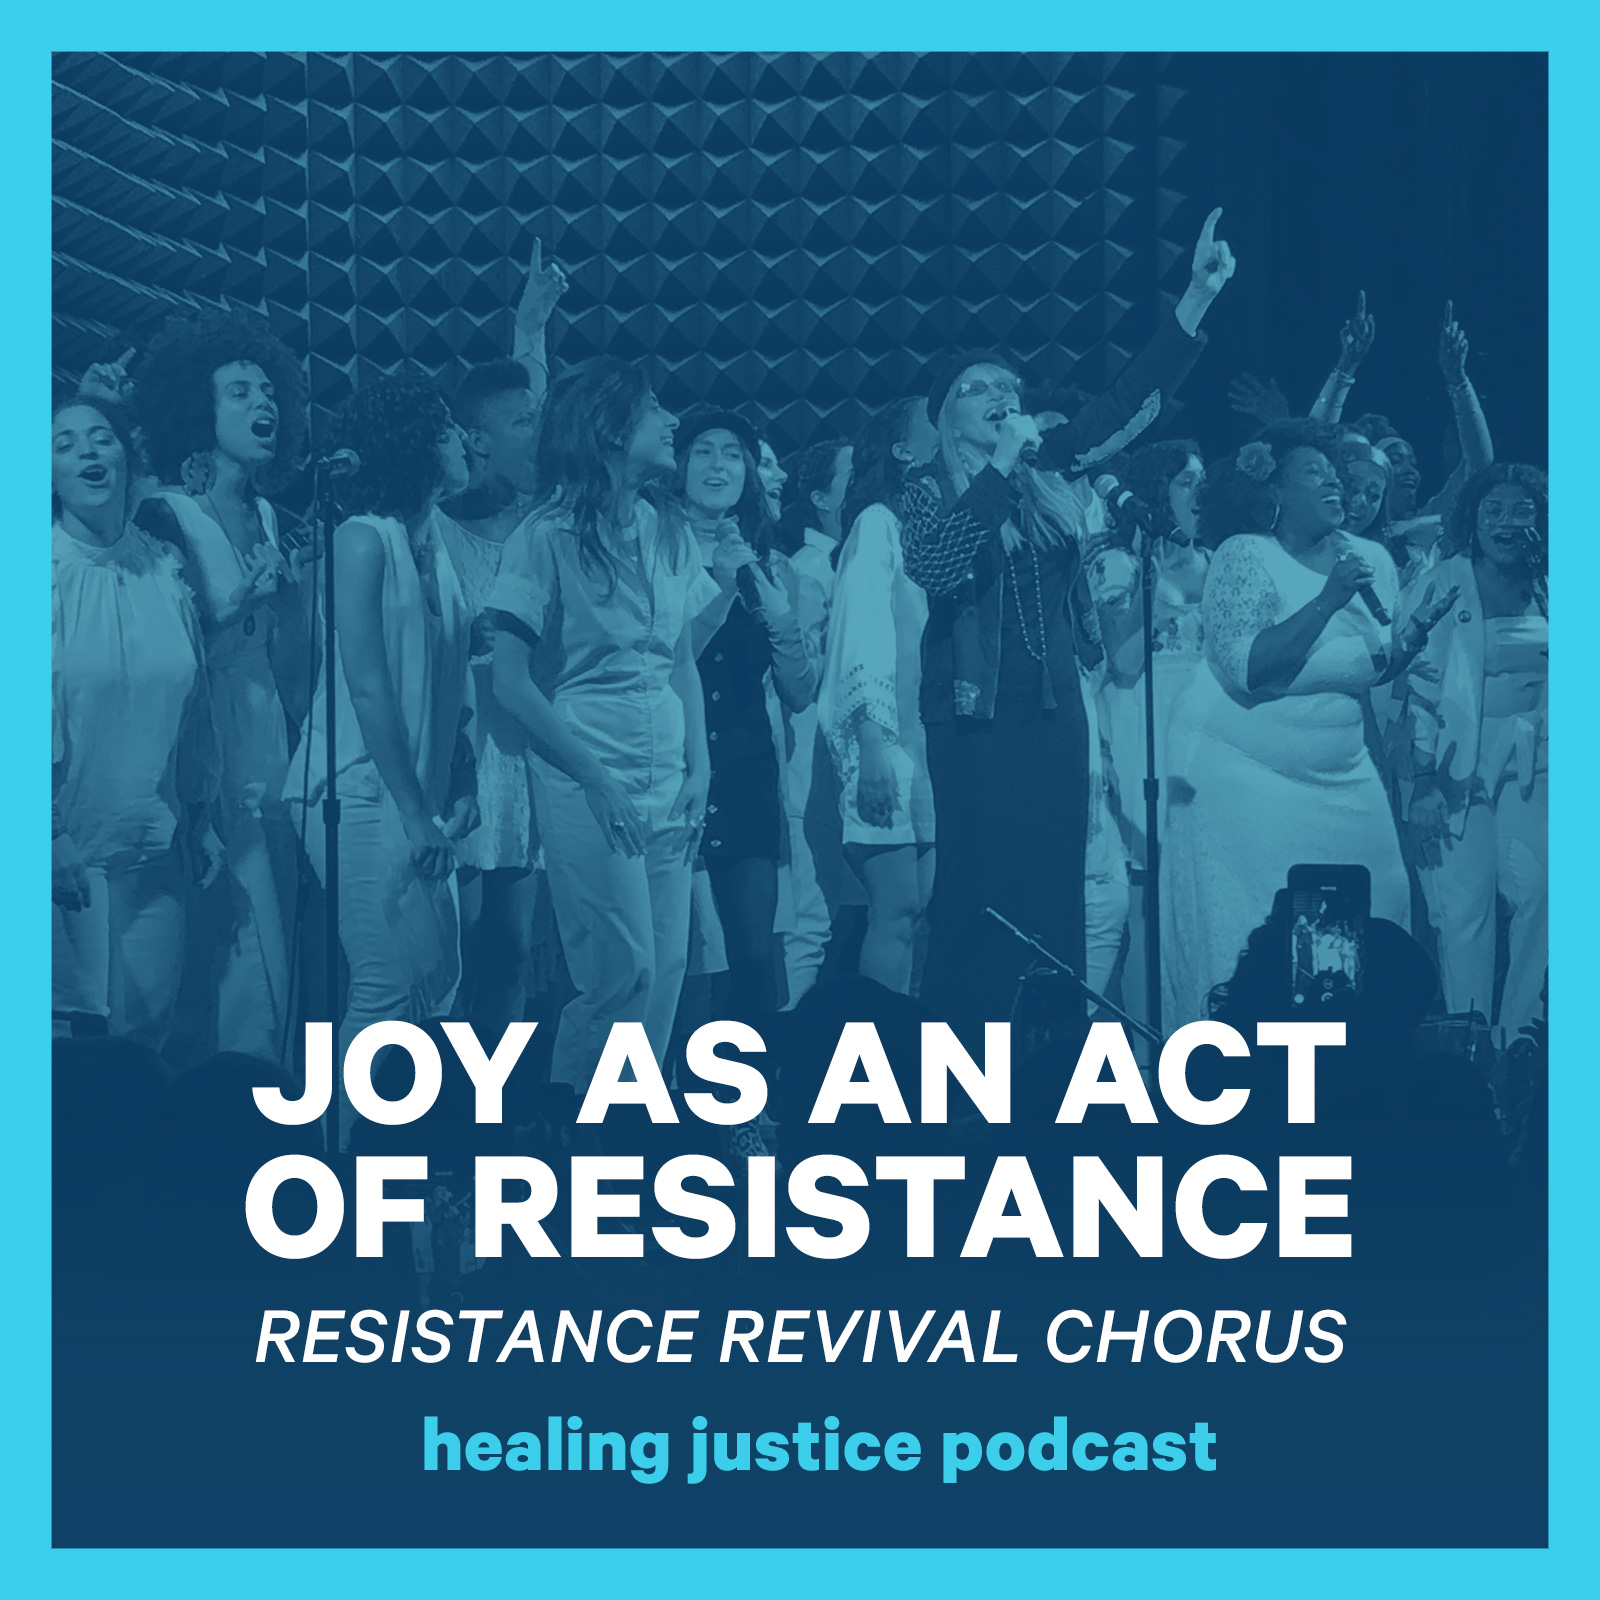 - In episode 30, we're talking with Resistance Revival Chorus members Meah Pace and Sarah Sophie Flicker. You'll hear their performances of protest songs new and old, as well as their thoughts on song and sisterhood, intersectionality, singing at the Grammy's with Kesha for #TimesUp & the #MeToo movement, parenthood, and self care.Download the corresponding practice (30 Practice: Sing for Freedom) to join Resistance Revival Chorus Musical Director Abena Koomson Davis in a meditative singing and listening practice you can do alone or in a group. Get ready to hear her beautiful voice and join in!Practice episodes always publish on Thursdays.